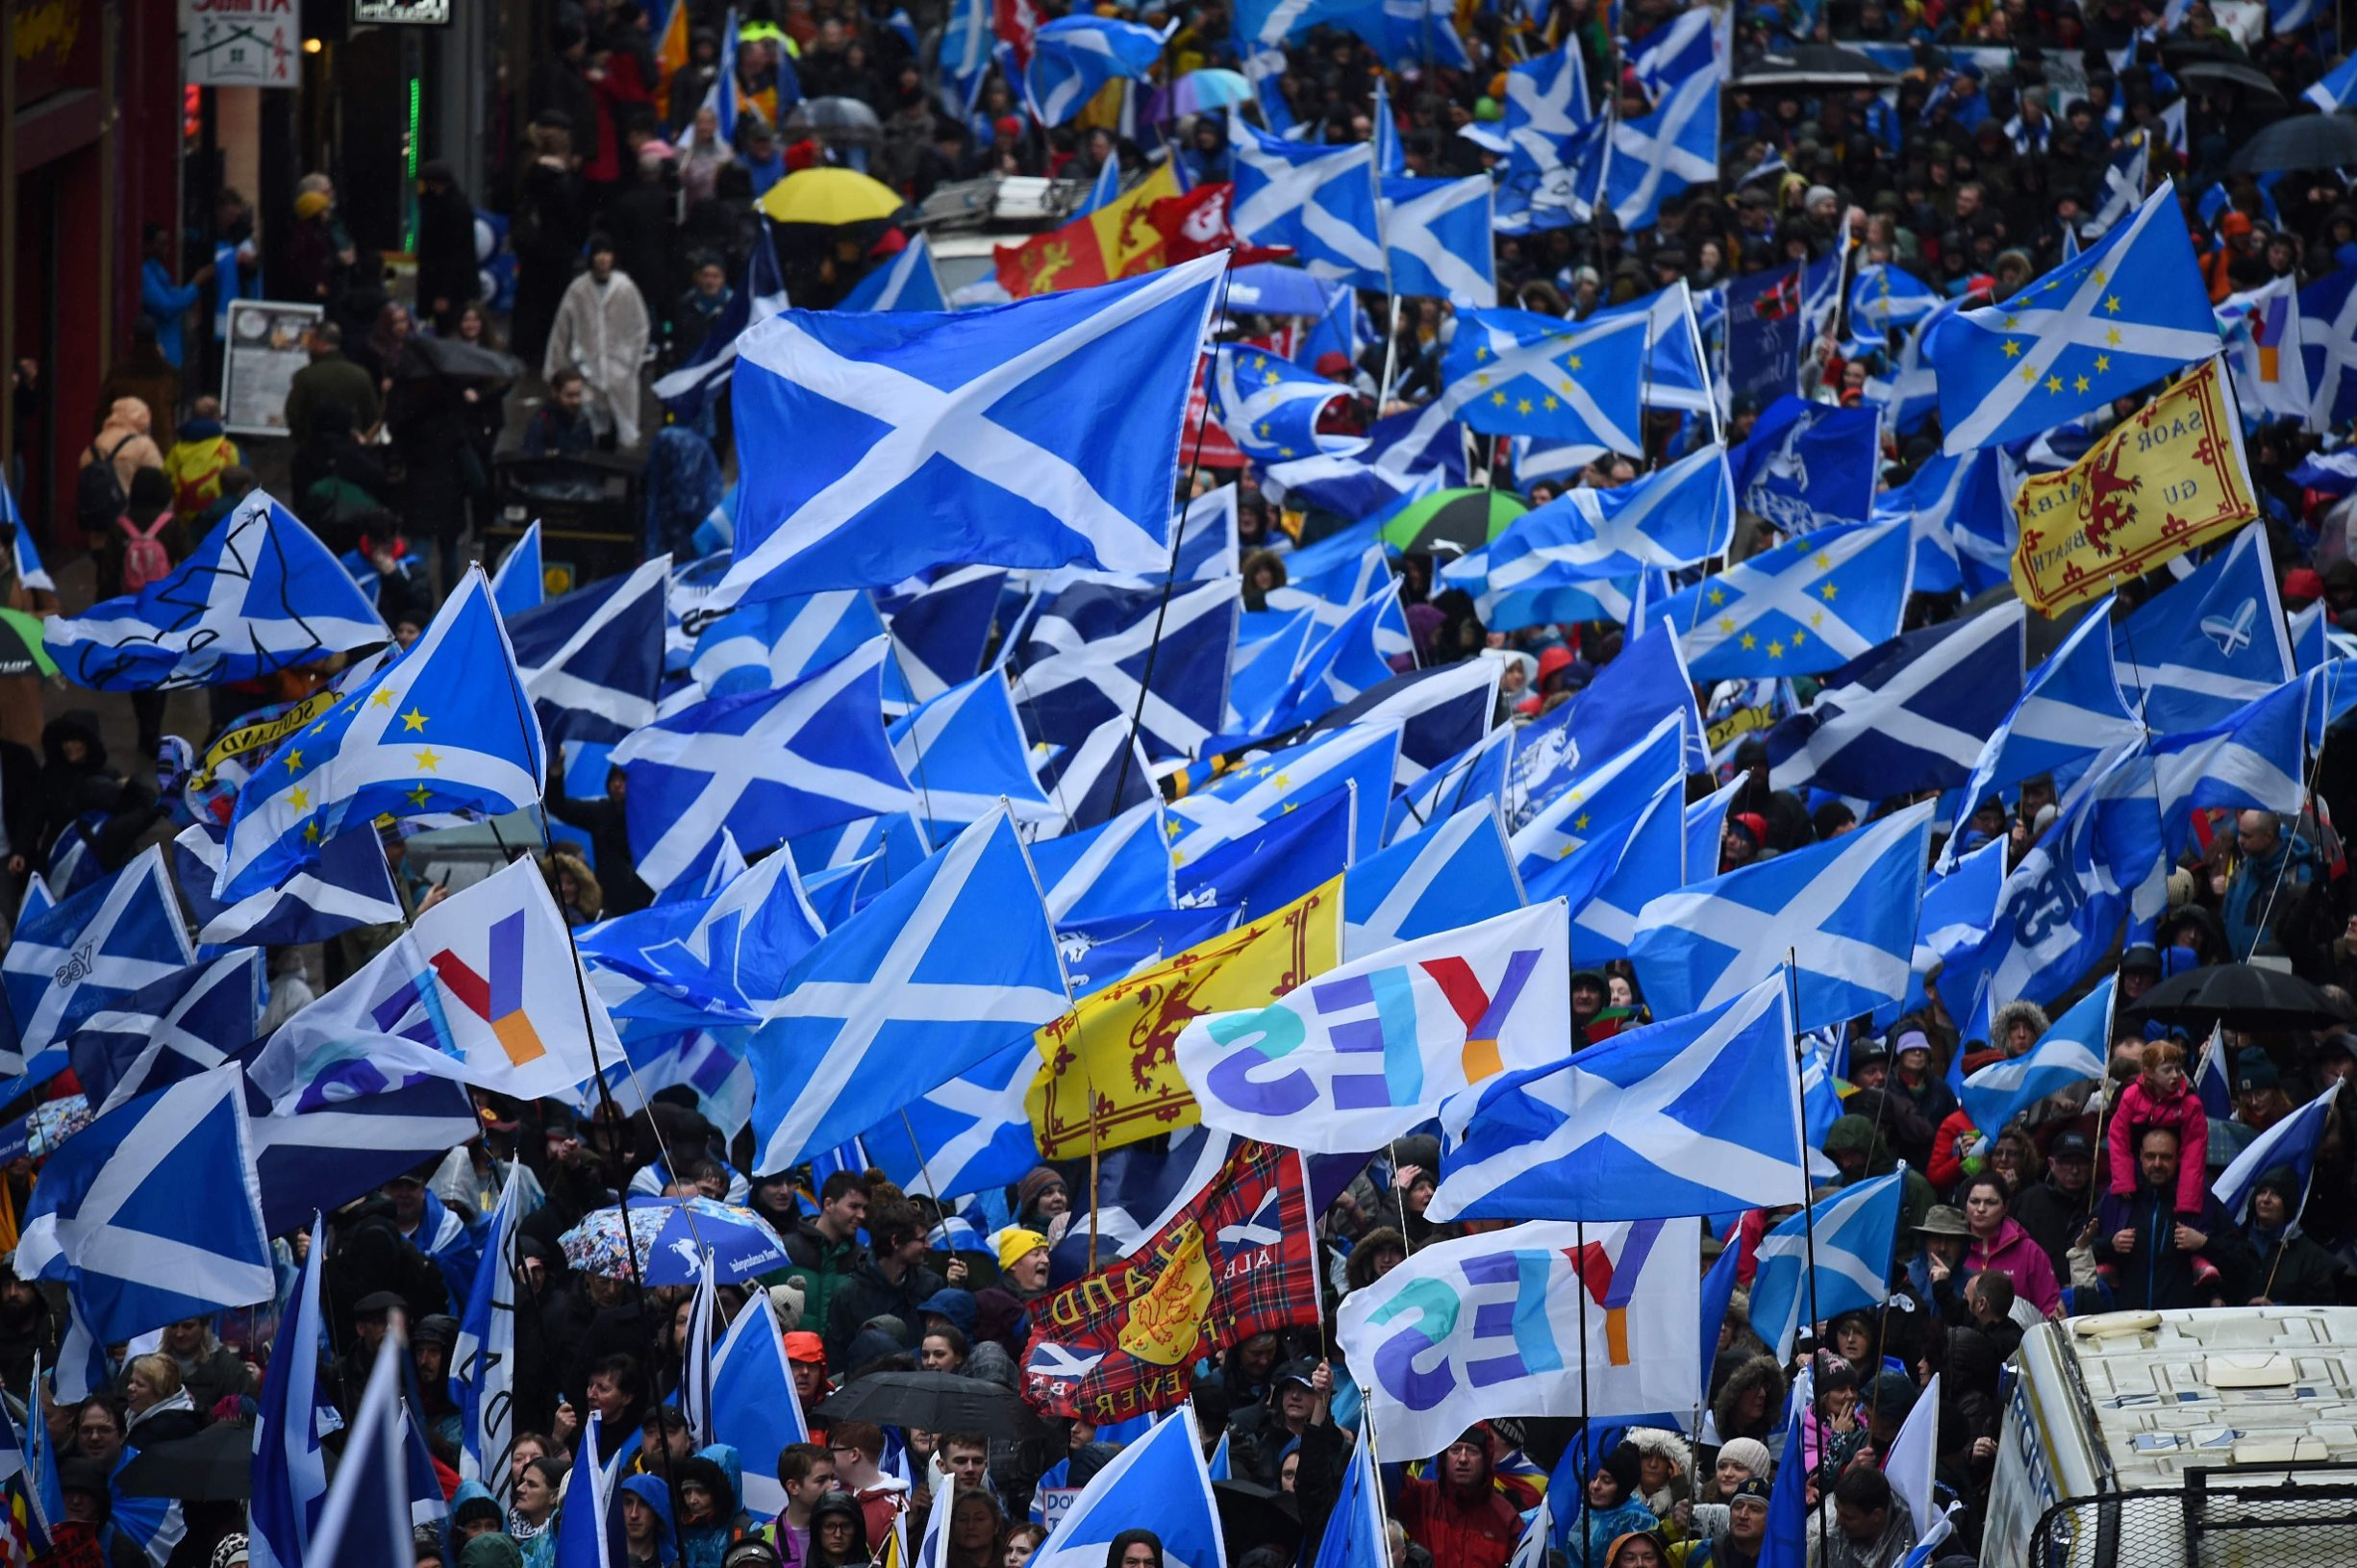 (FILES) In this file photo taken on January 11, 2020 Protesters with Scottish Saltire flags attend a march organised by the grassroots organistaion All Under One Banner calling for Scottish independence in Glasgow. - Britain's January 31, 2020 departure from the European Union has revived the debate for an independent Scotland, which was thought to have been settled in a landmark referendum nearly six years ago. Scots voted by a majority of 55 percent to remain part of the United Kingdom in 2014, effectively taking the issue off the table in what was described as a